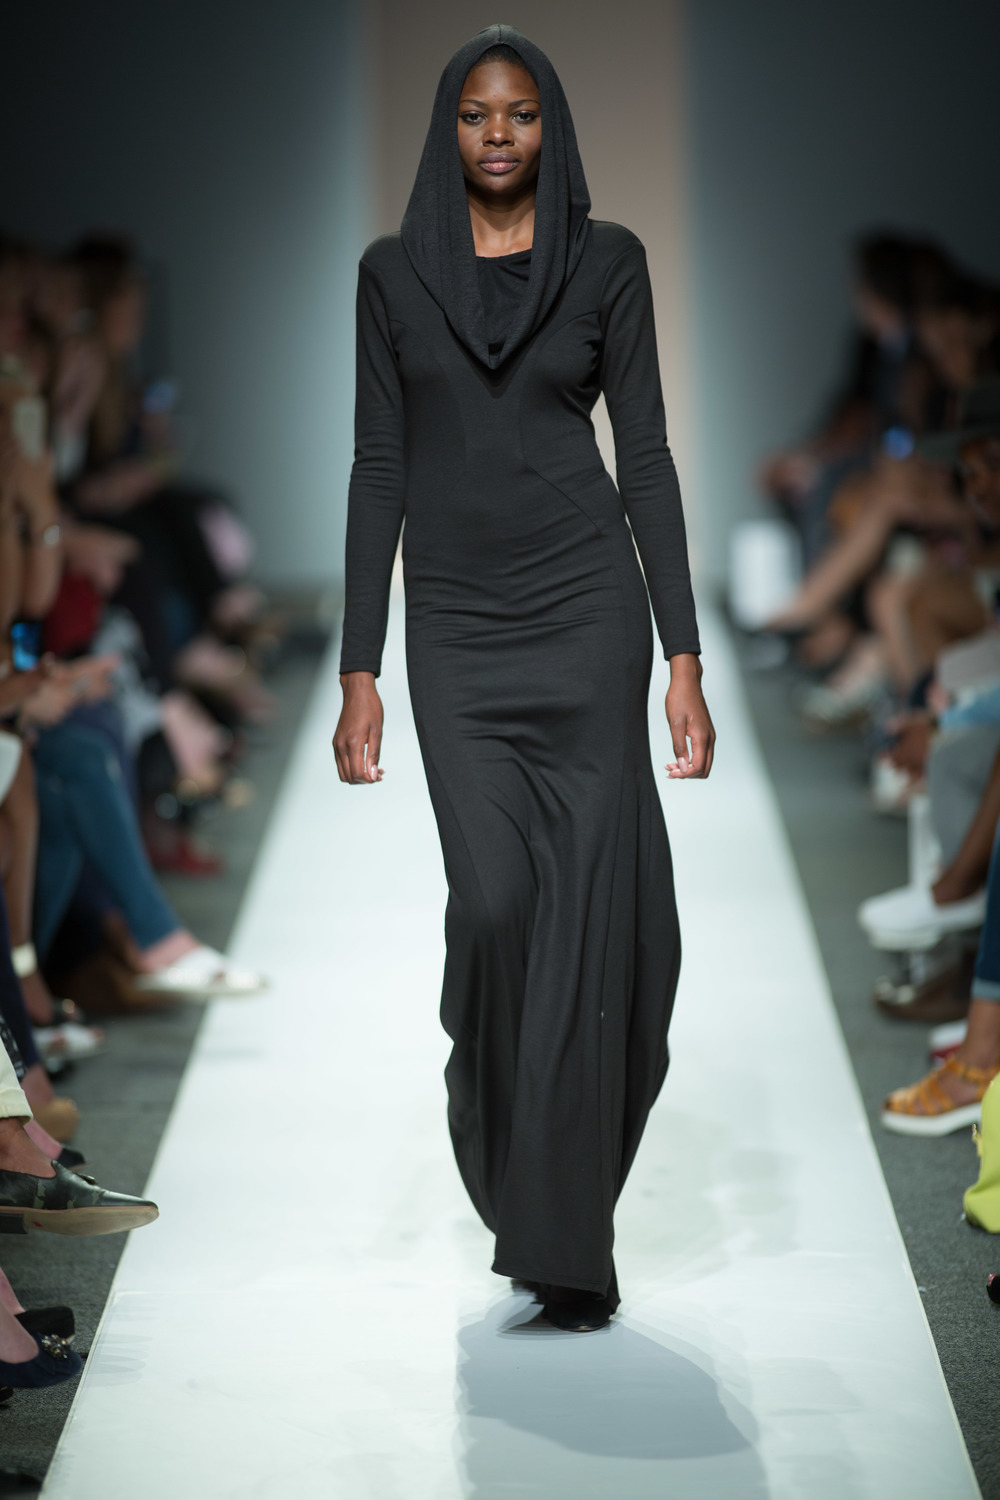 The long jersey dress inspired by the Balenciaga dress on the runway.